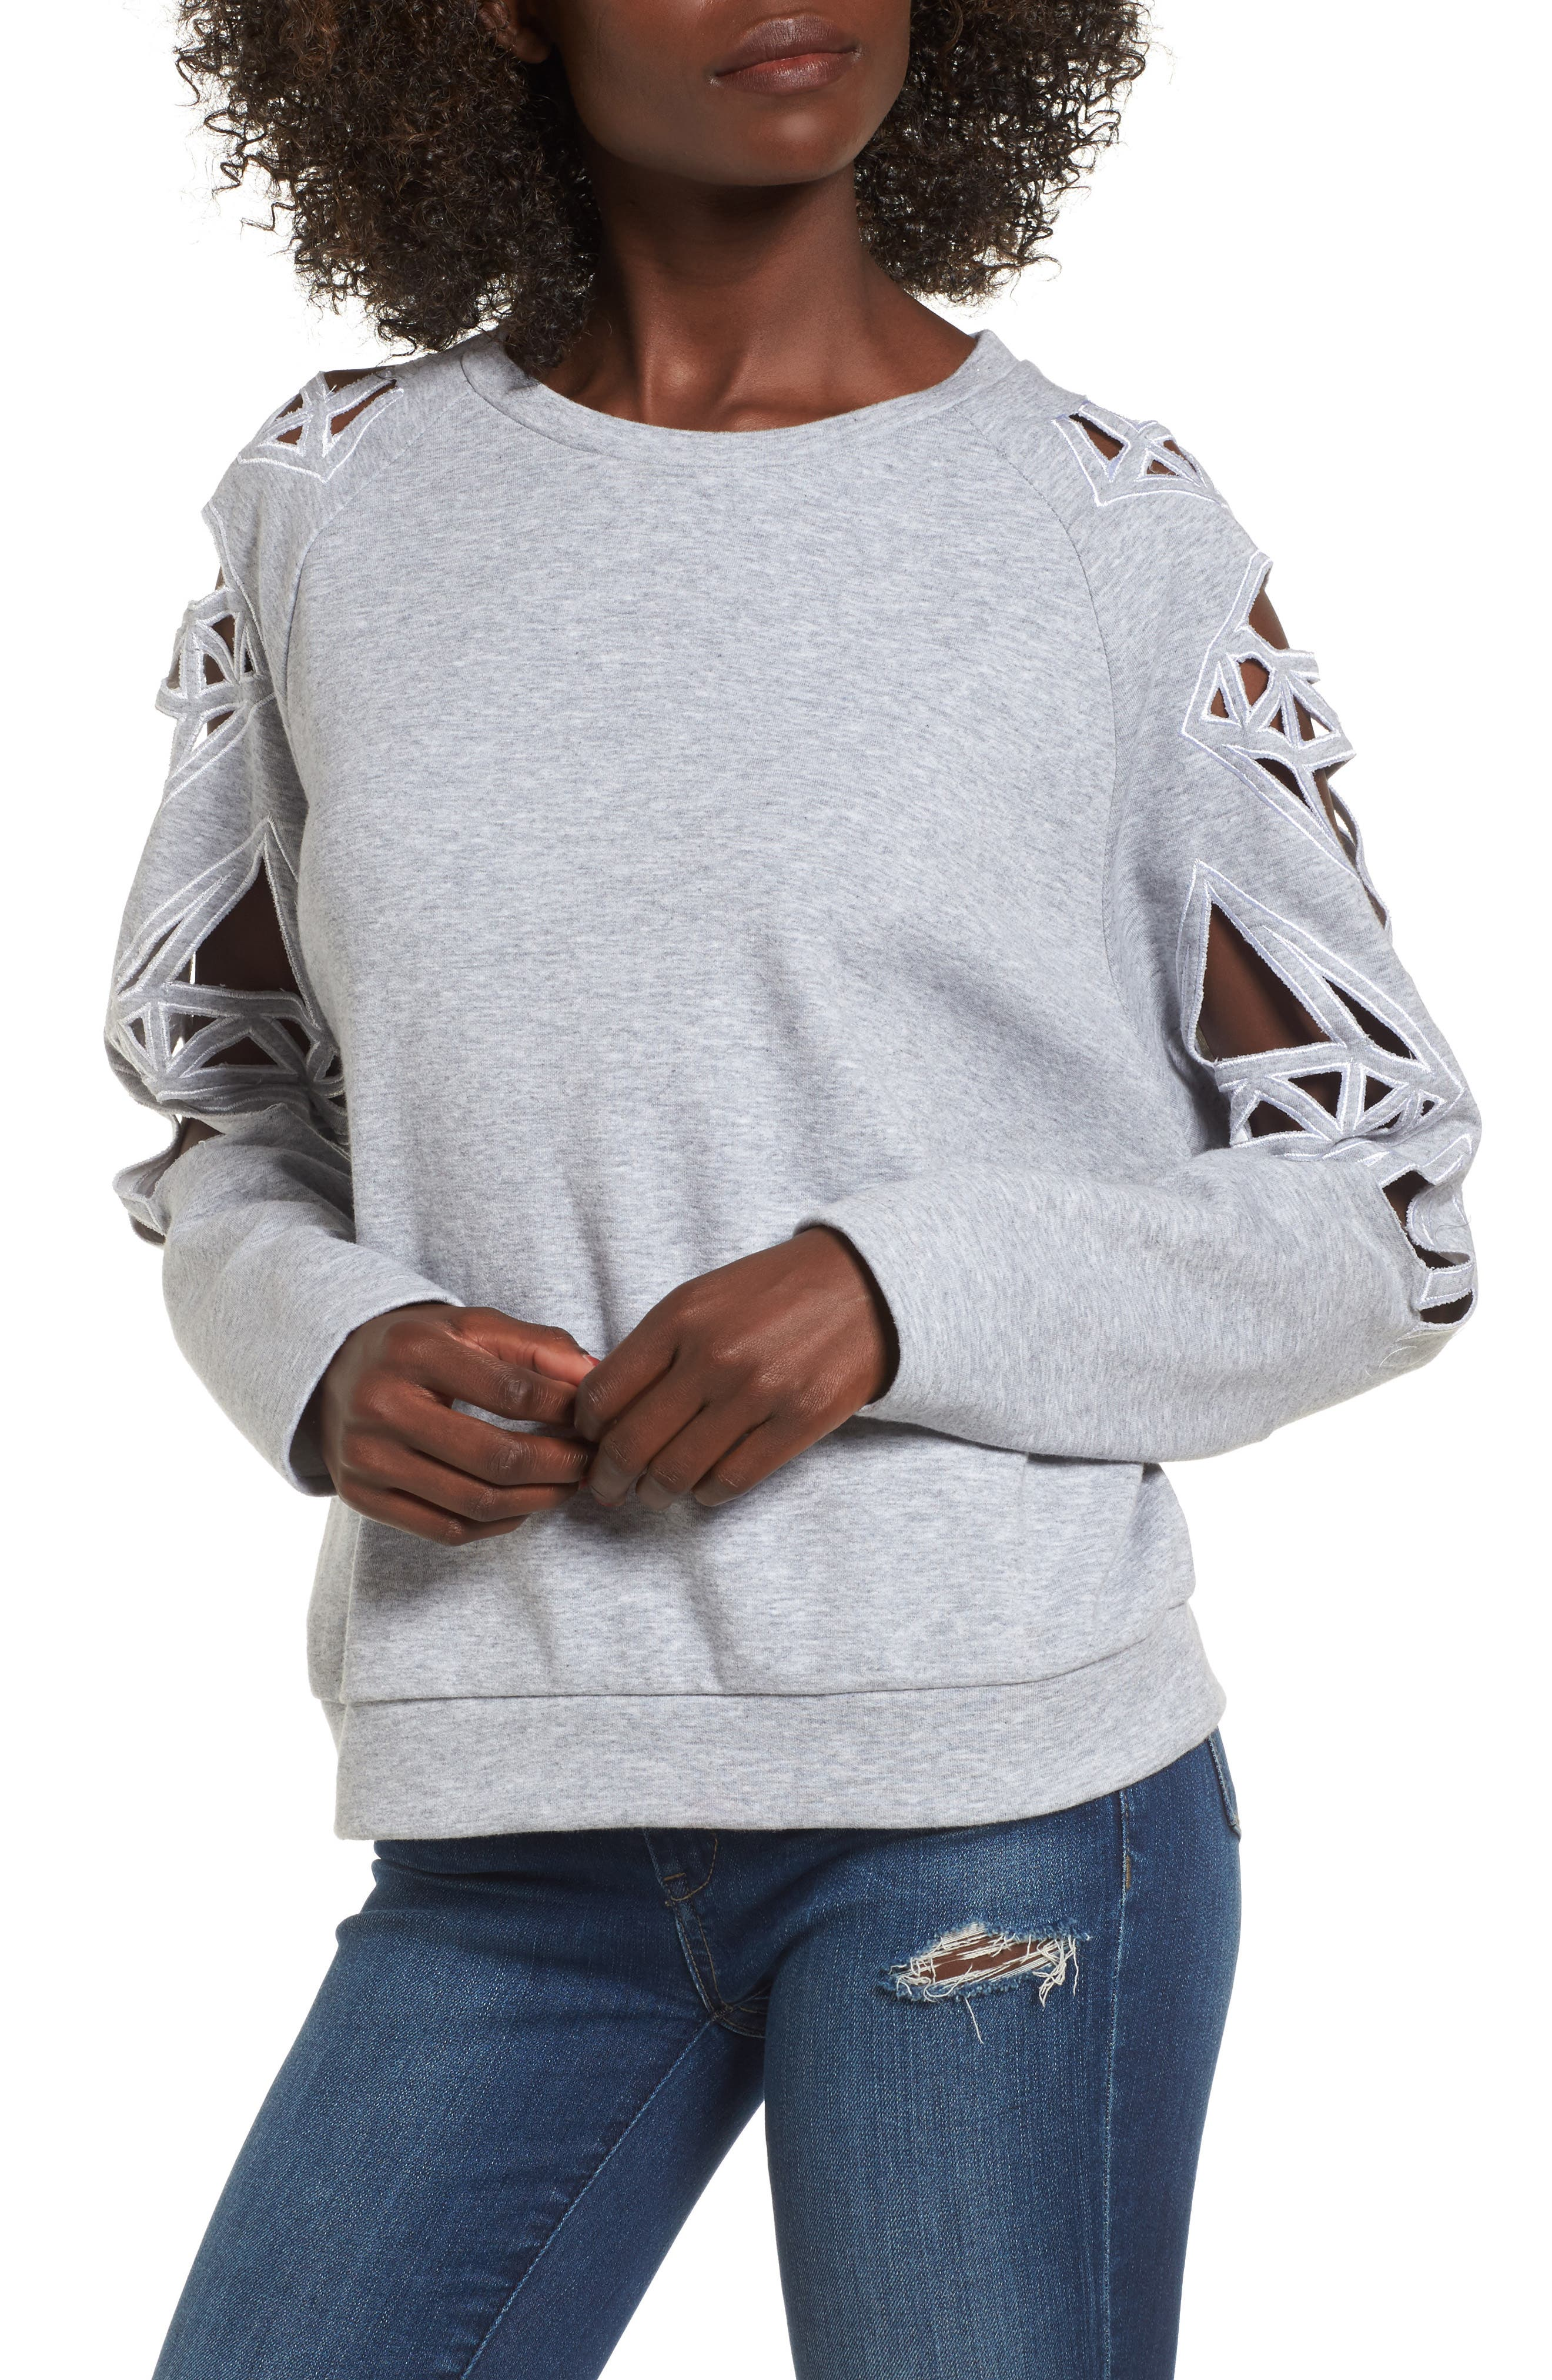 Alternate Image 1 Selected - Supertrash Taffic Cutout Sweatshirt